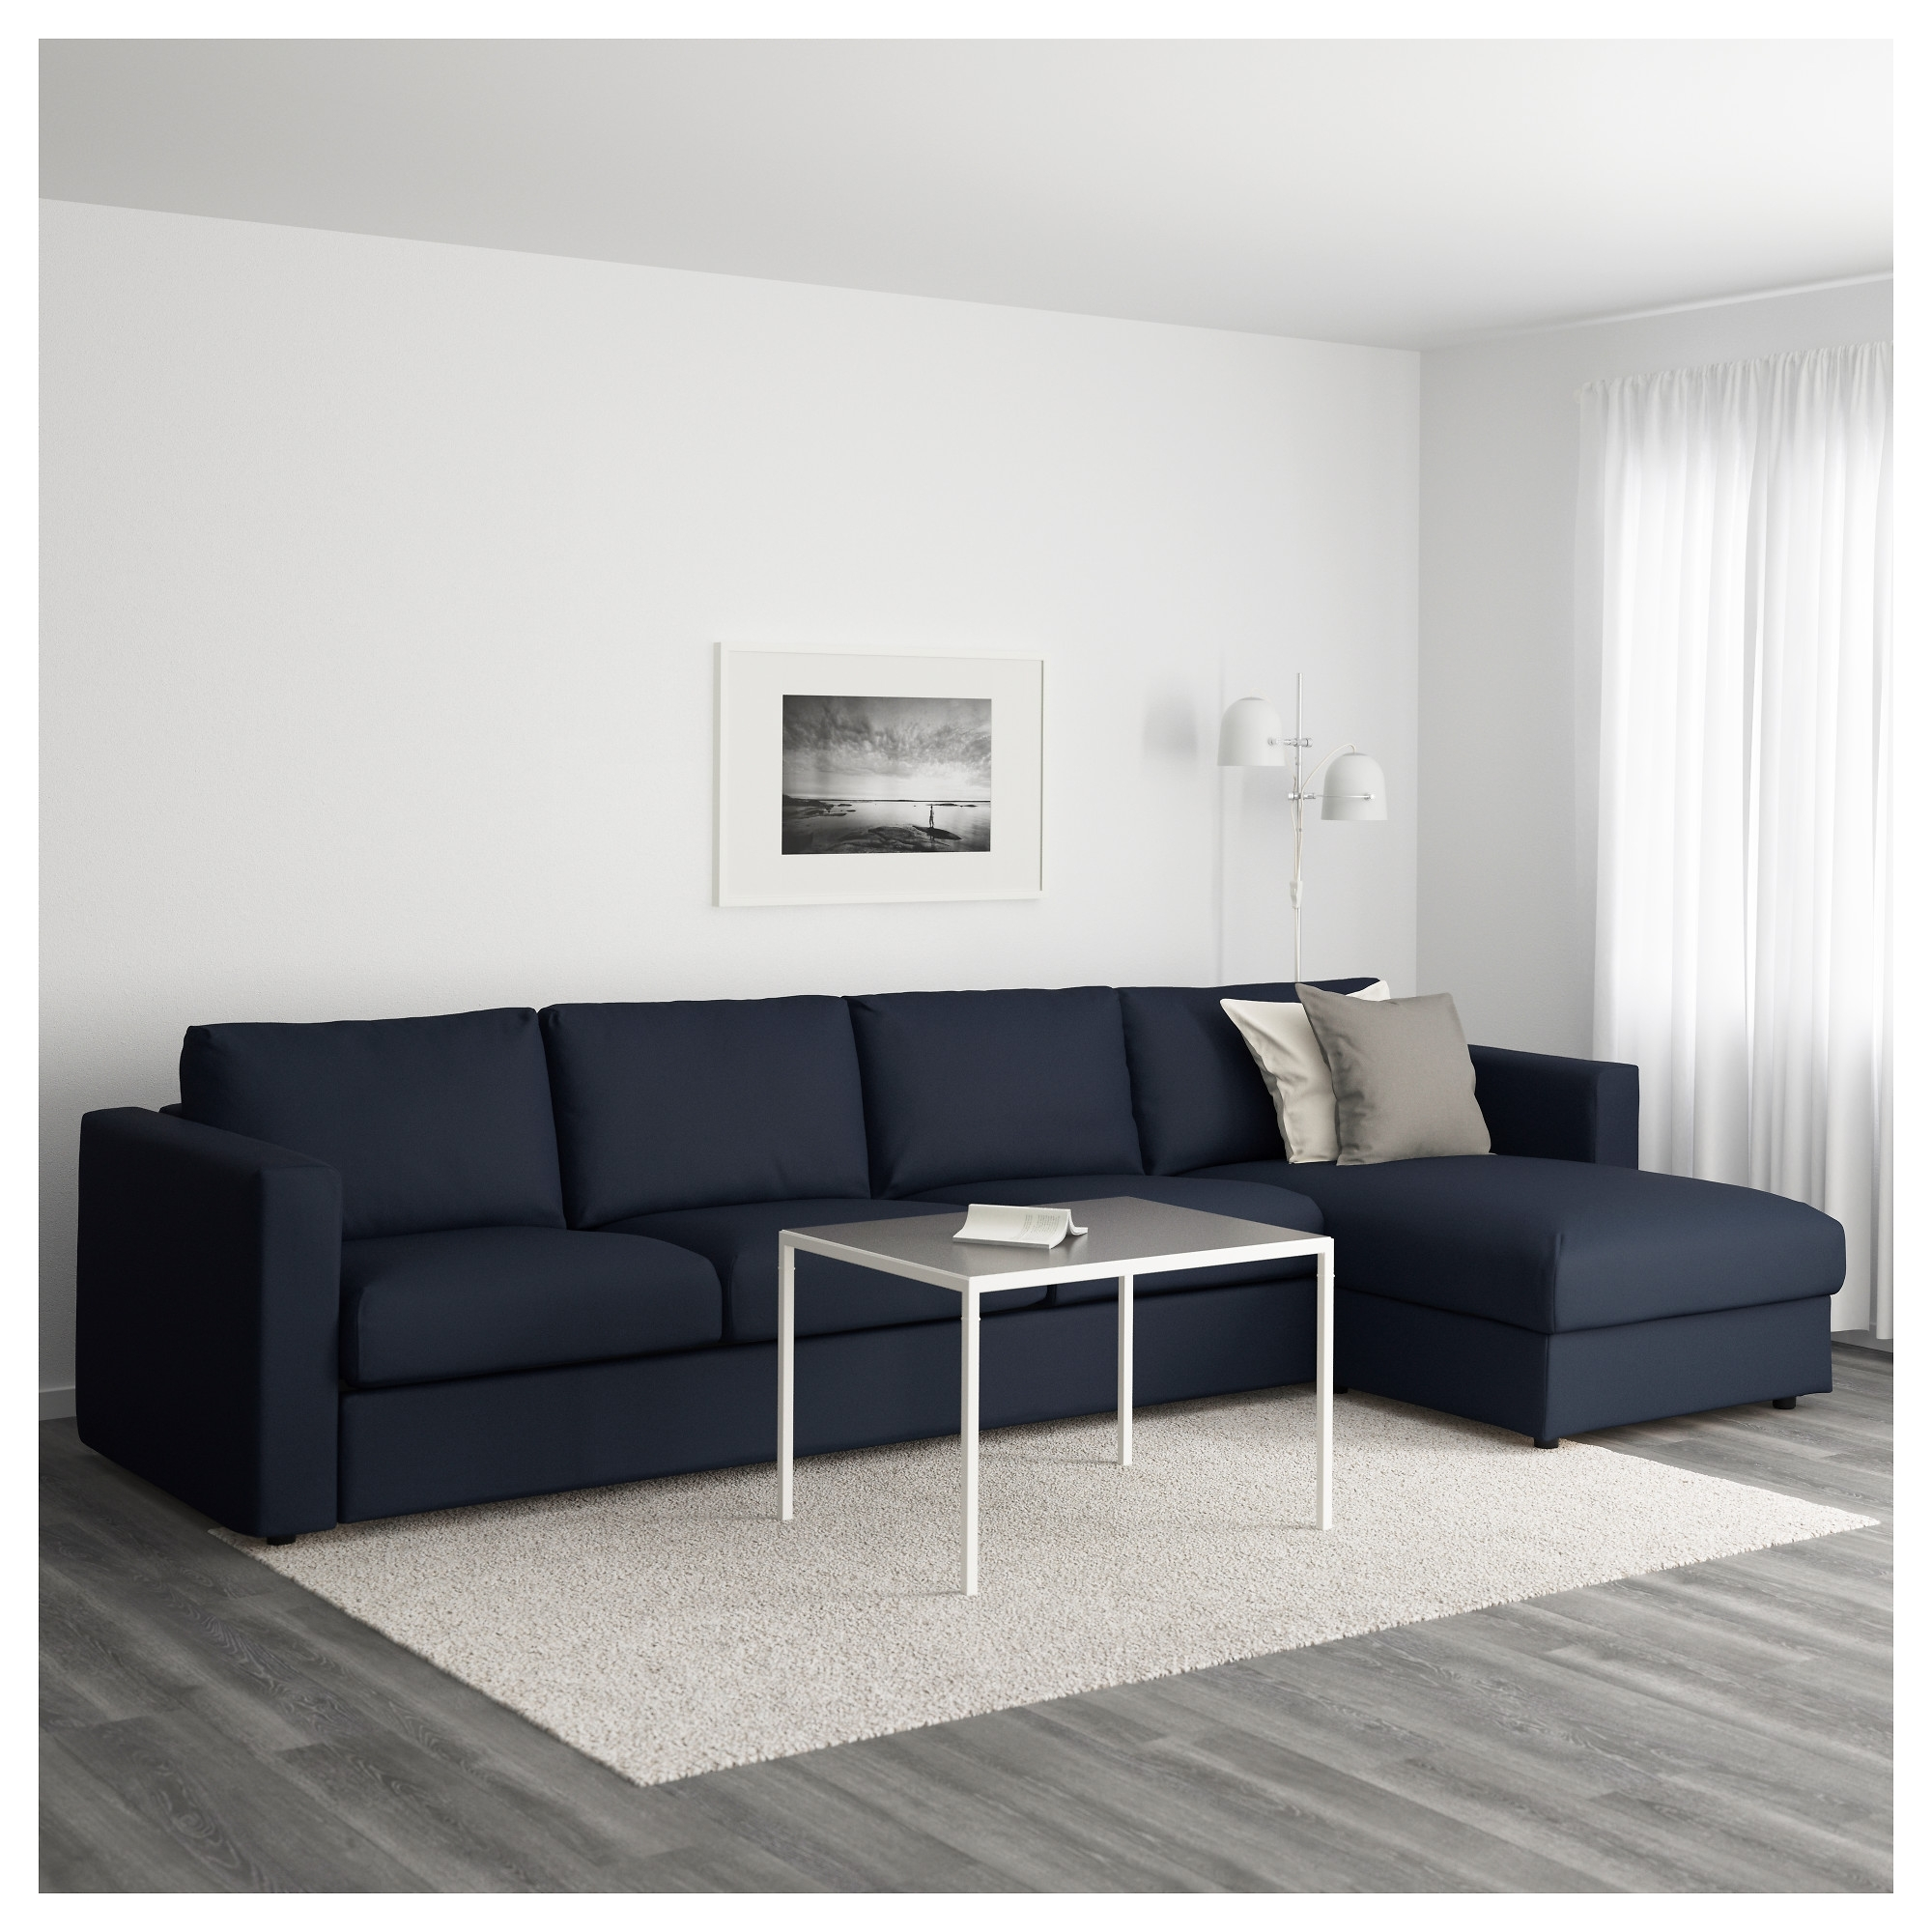 Vimle 4 Seat Sofa With Chaise Longue/gräsbo Black Blue – Ikea Within Popular 4 Seat Sofas (View 12 of 15)